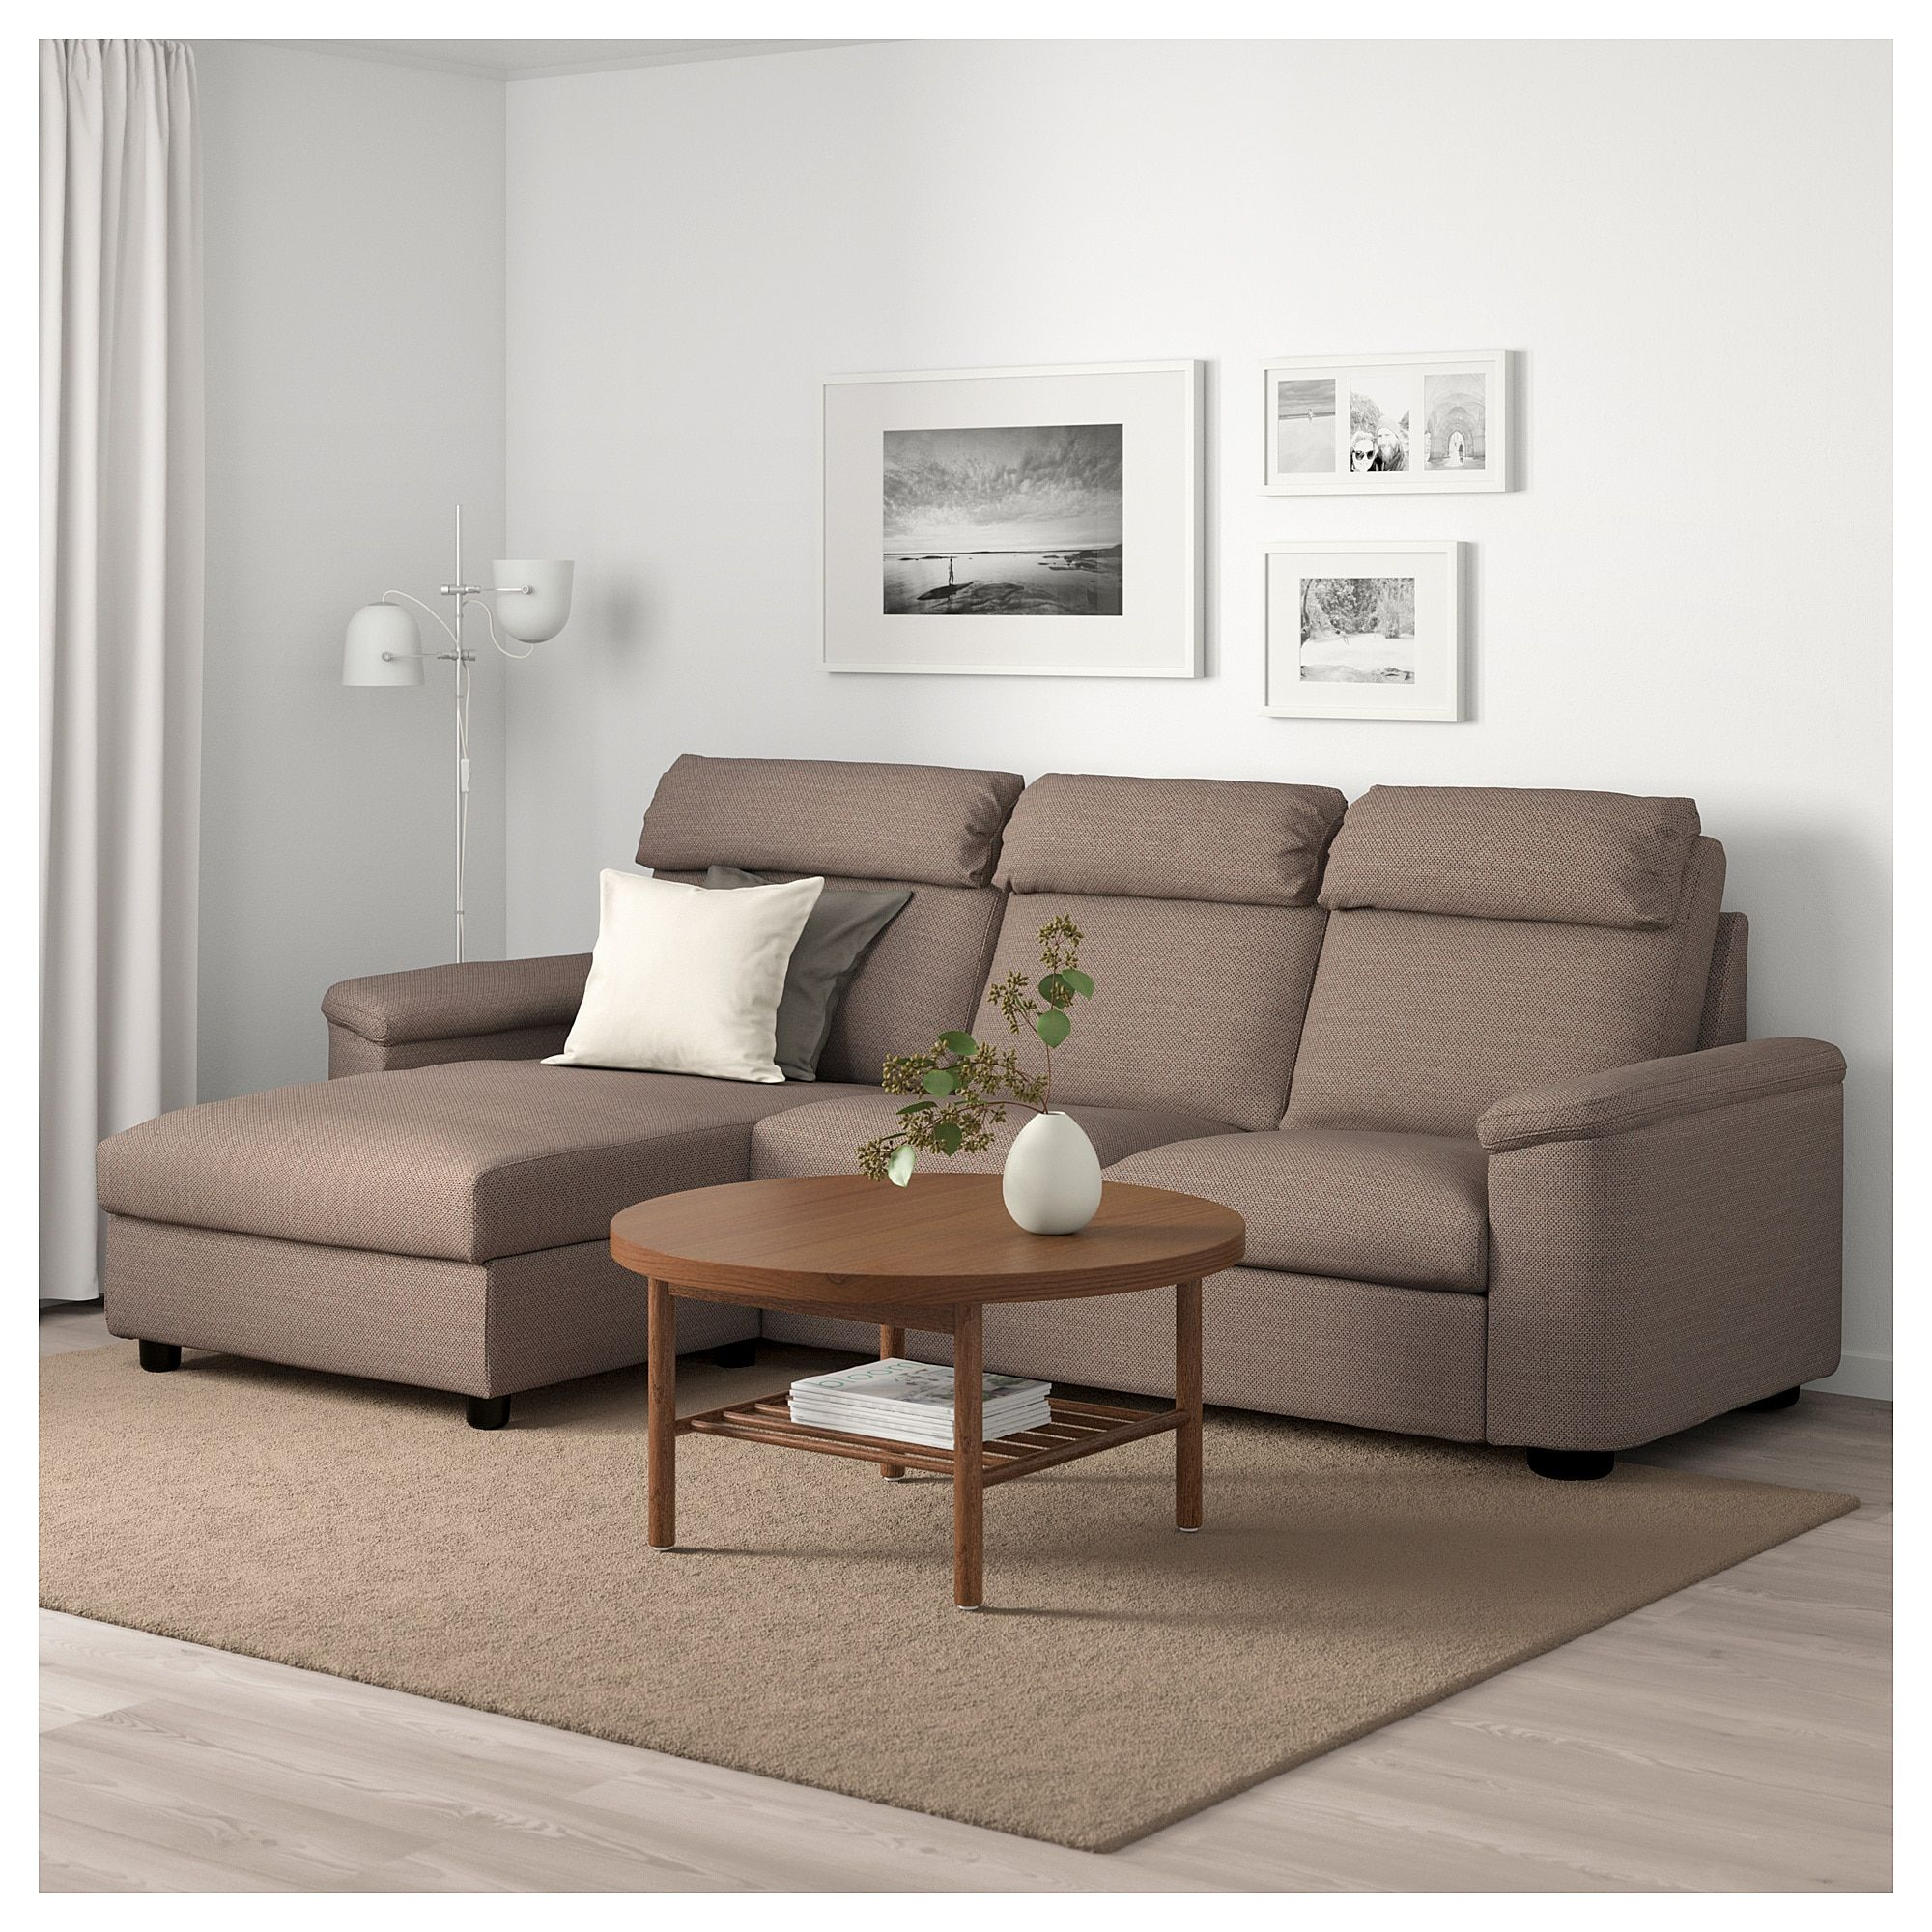 Ikea Sofa 180 Cm Ikea Lidhult Sofa With Chaise Lejde Beige Brown Products